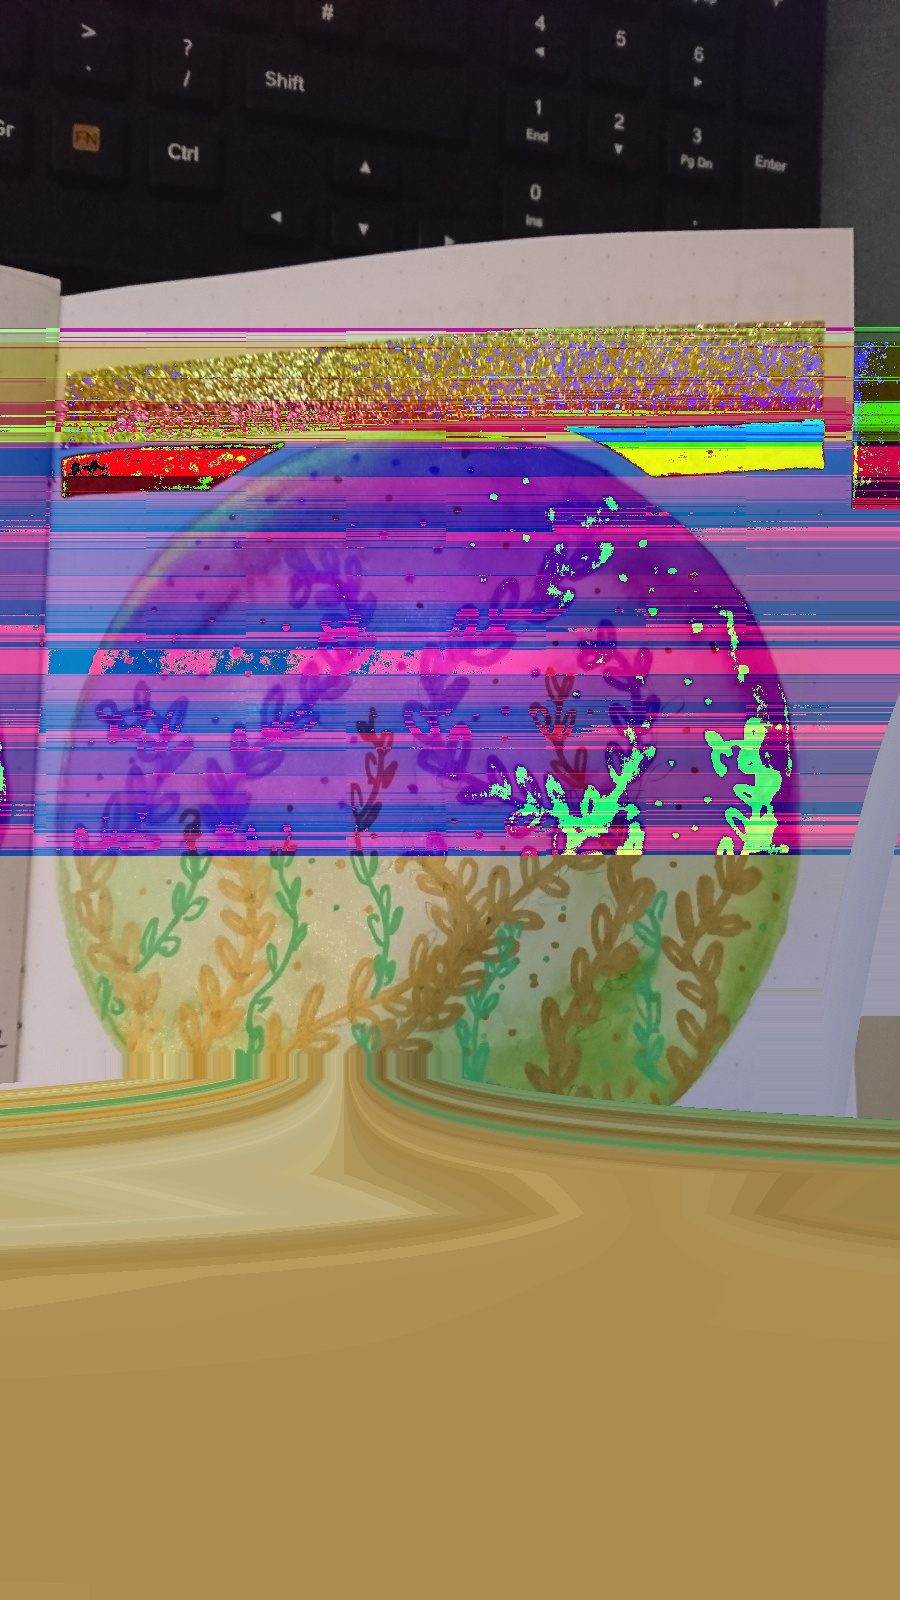 Not Your Sketchbook Either glitch art